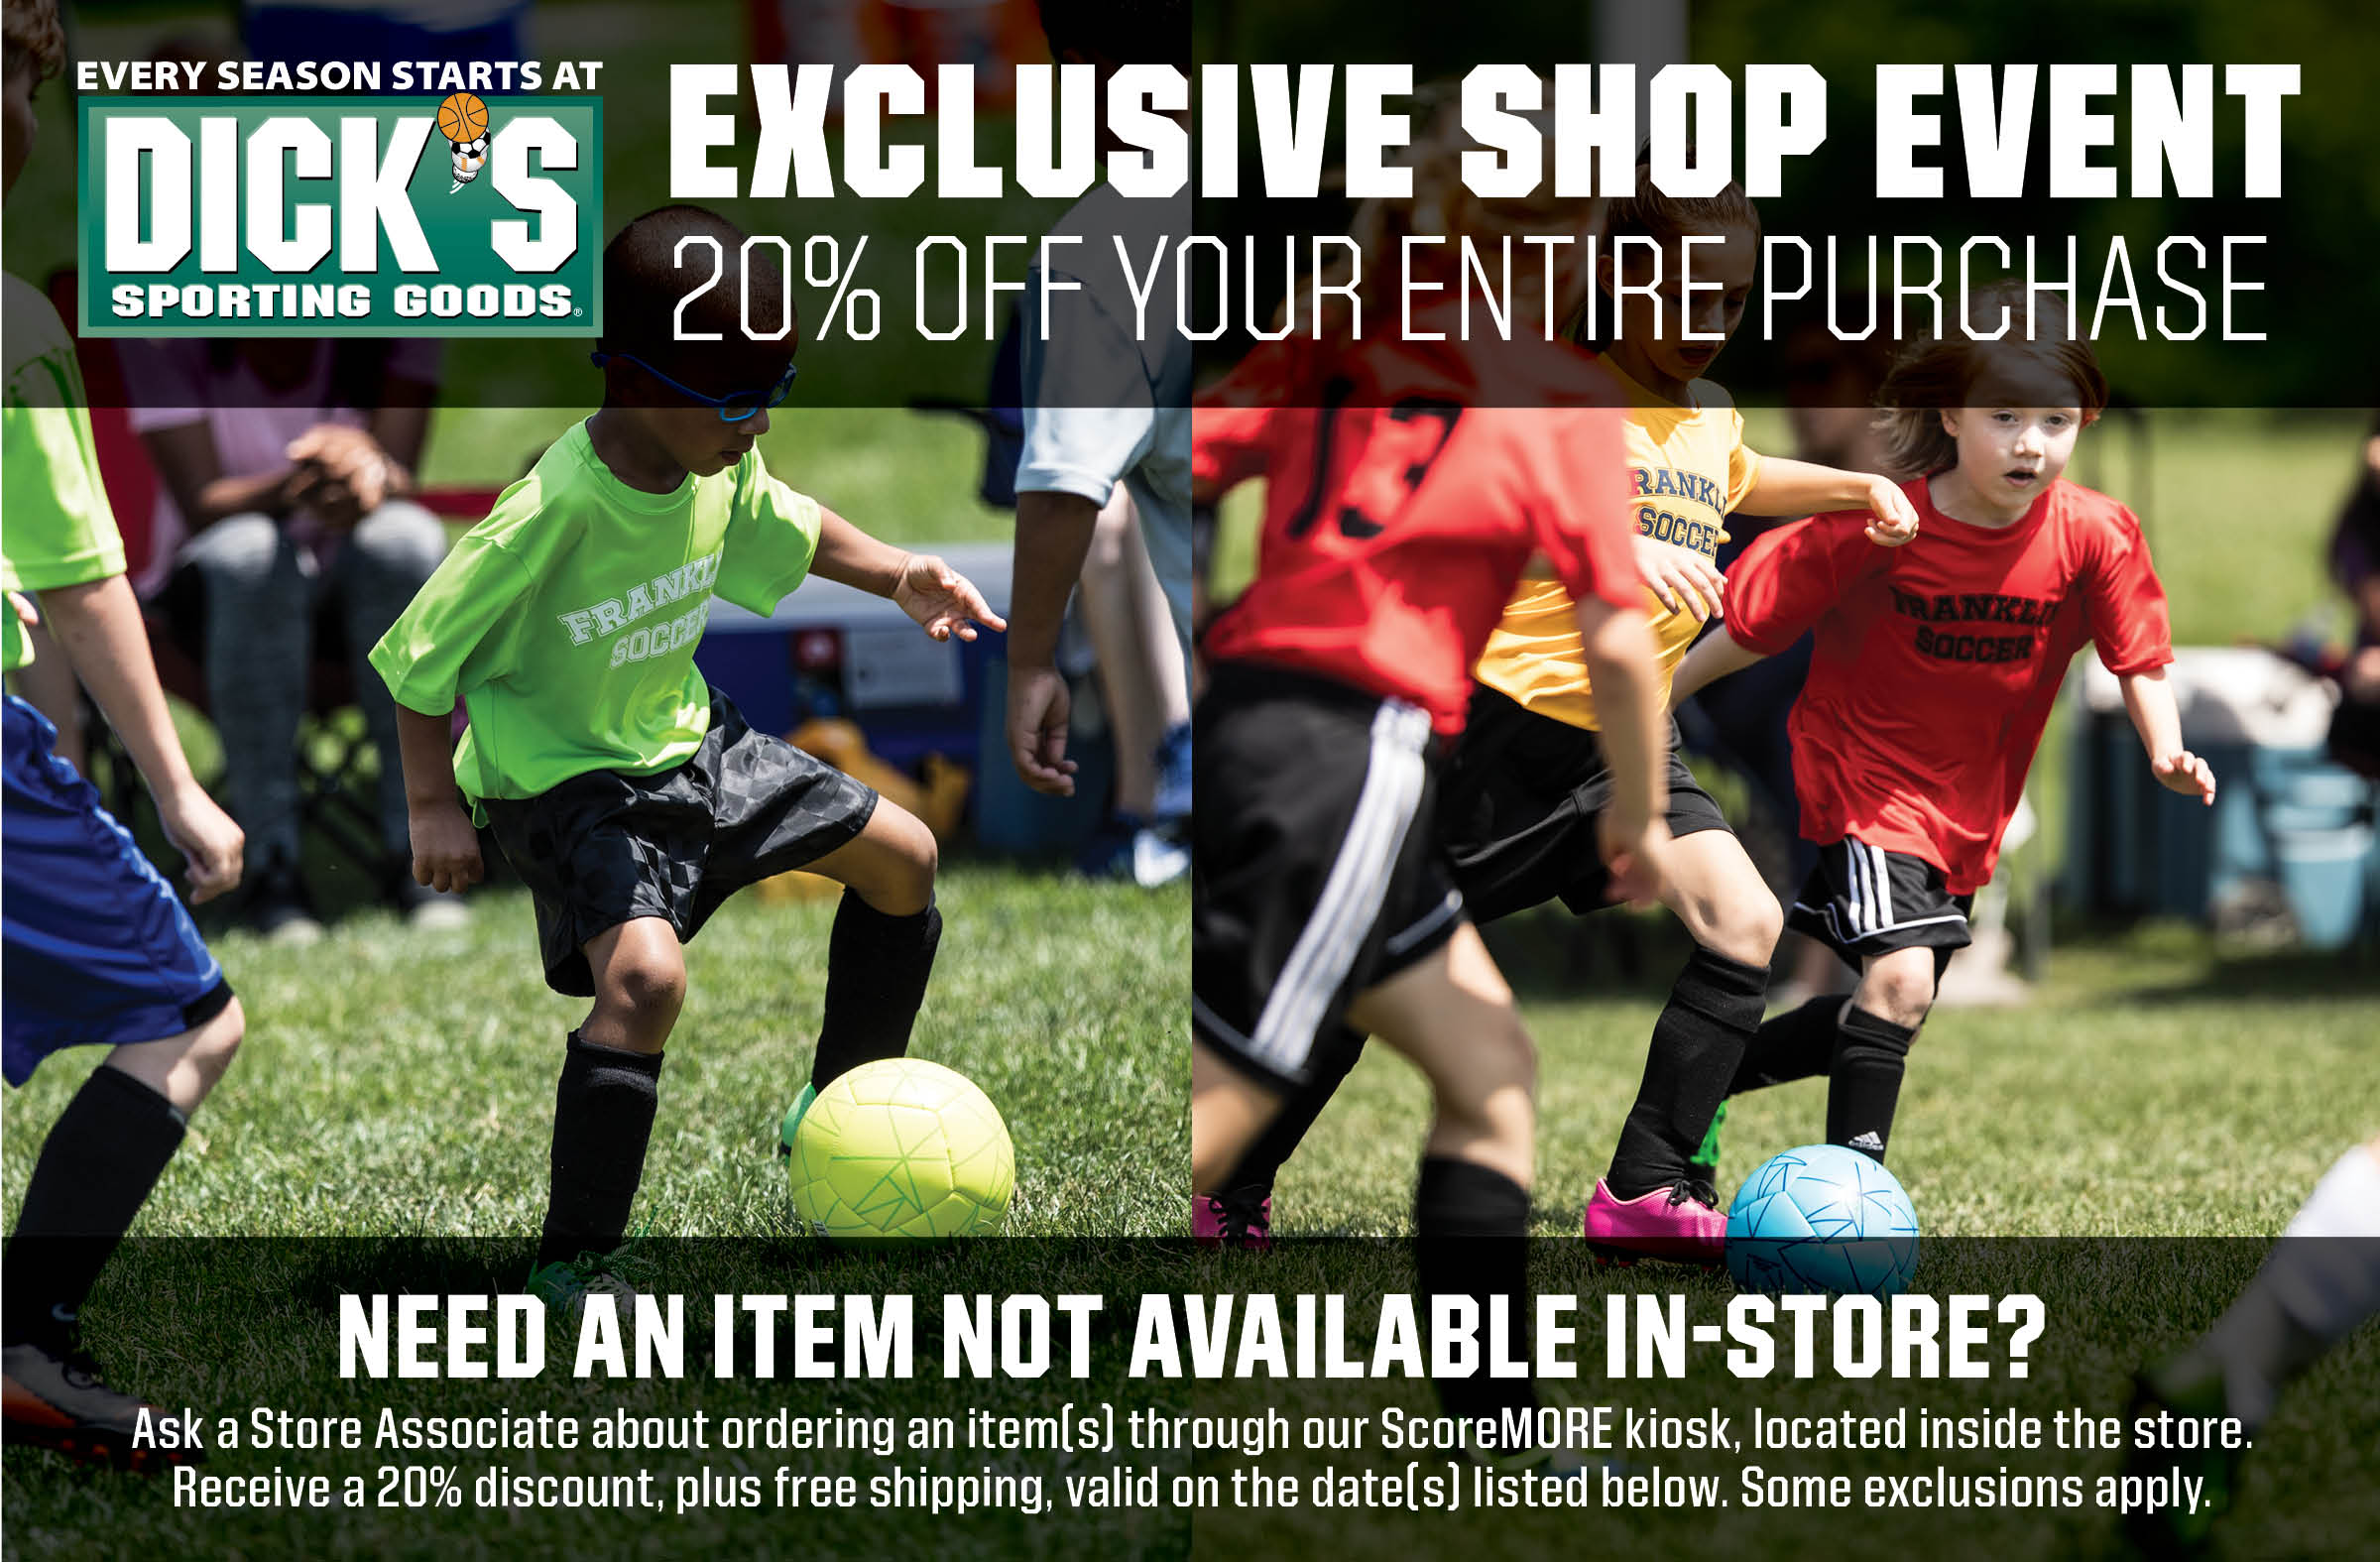 Dick's Sporting Goods Rainbow Soccer Days Friday March 5 - Monday March 8.